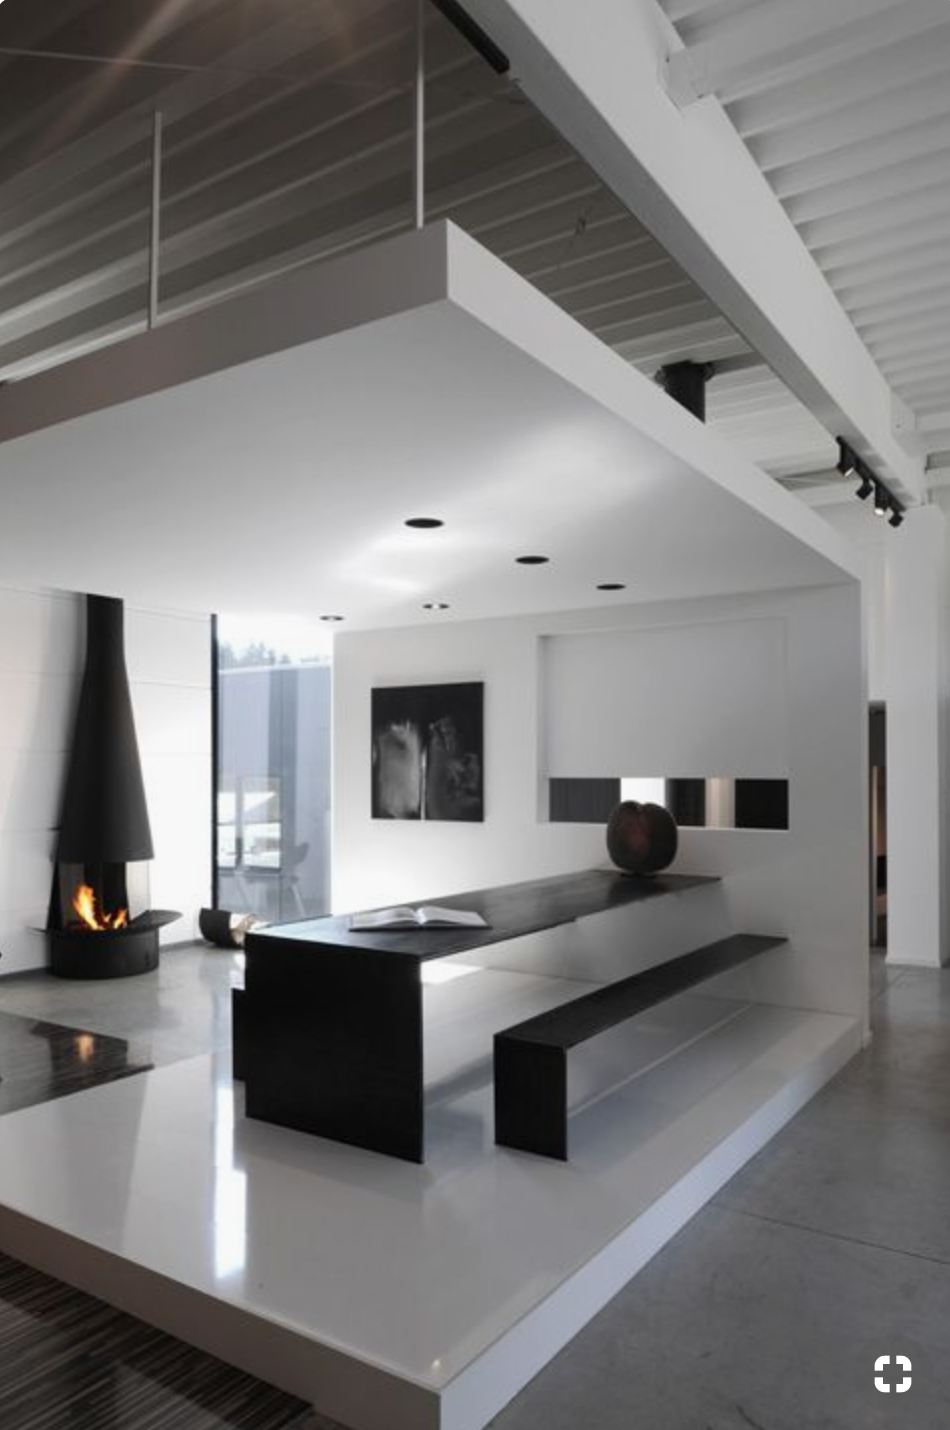 - ModernThis is a typical look of a Modern style of decorating. Square lines and little color. B&W images or abstracts are great for this type of decorating style